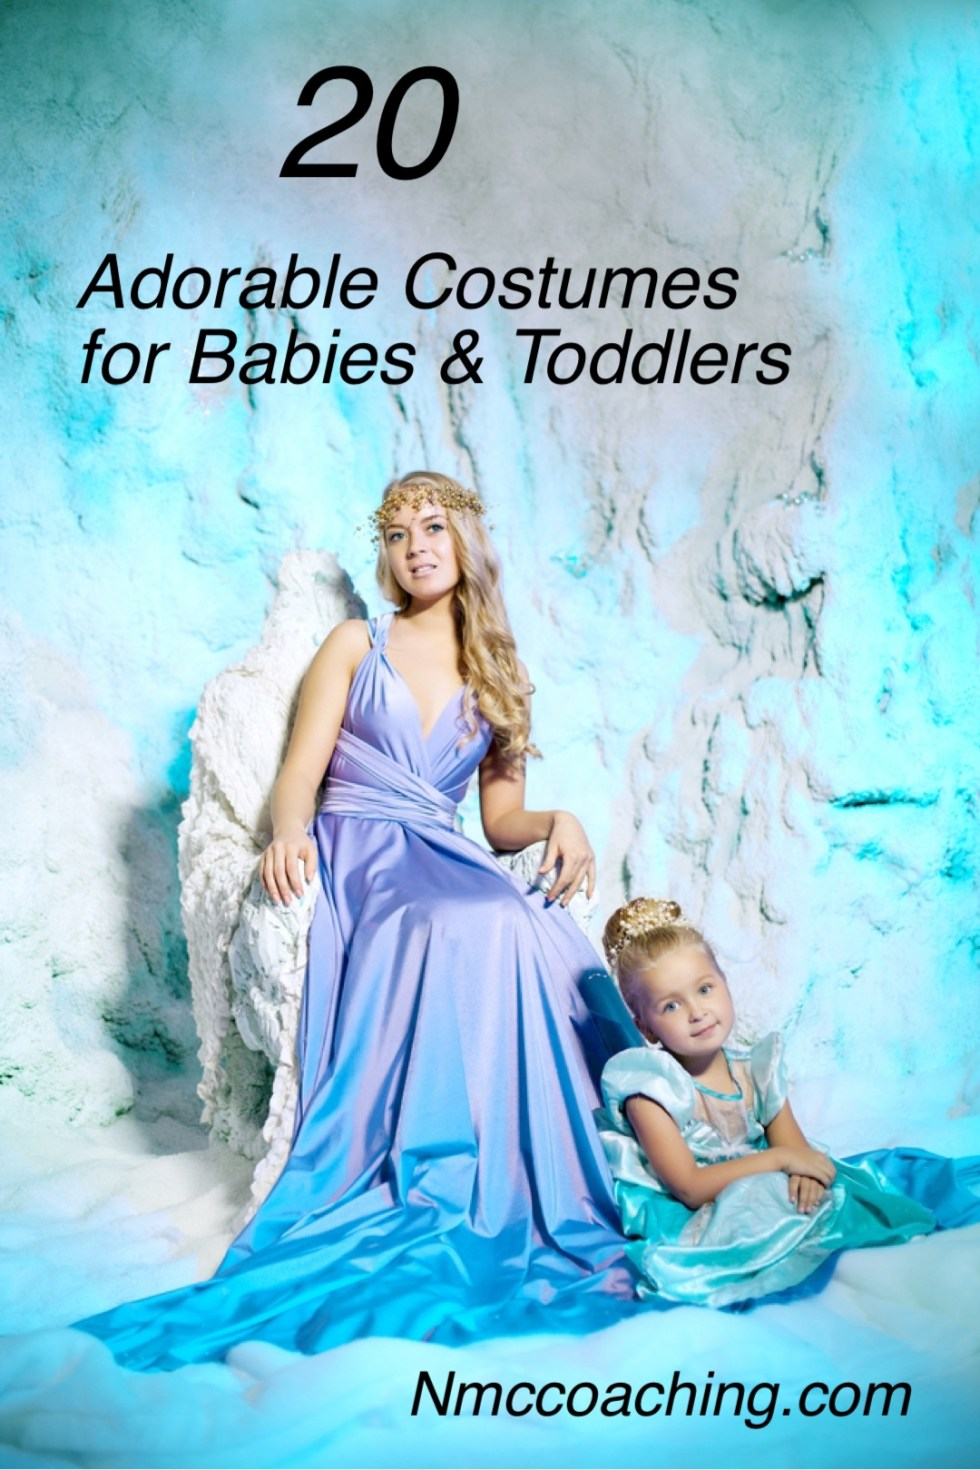 20 Adorable costumes for babies and toddlers